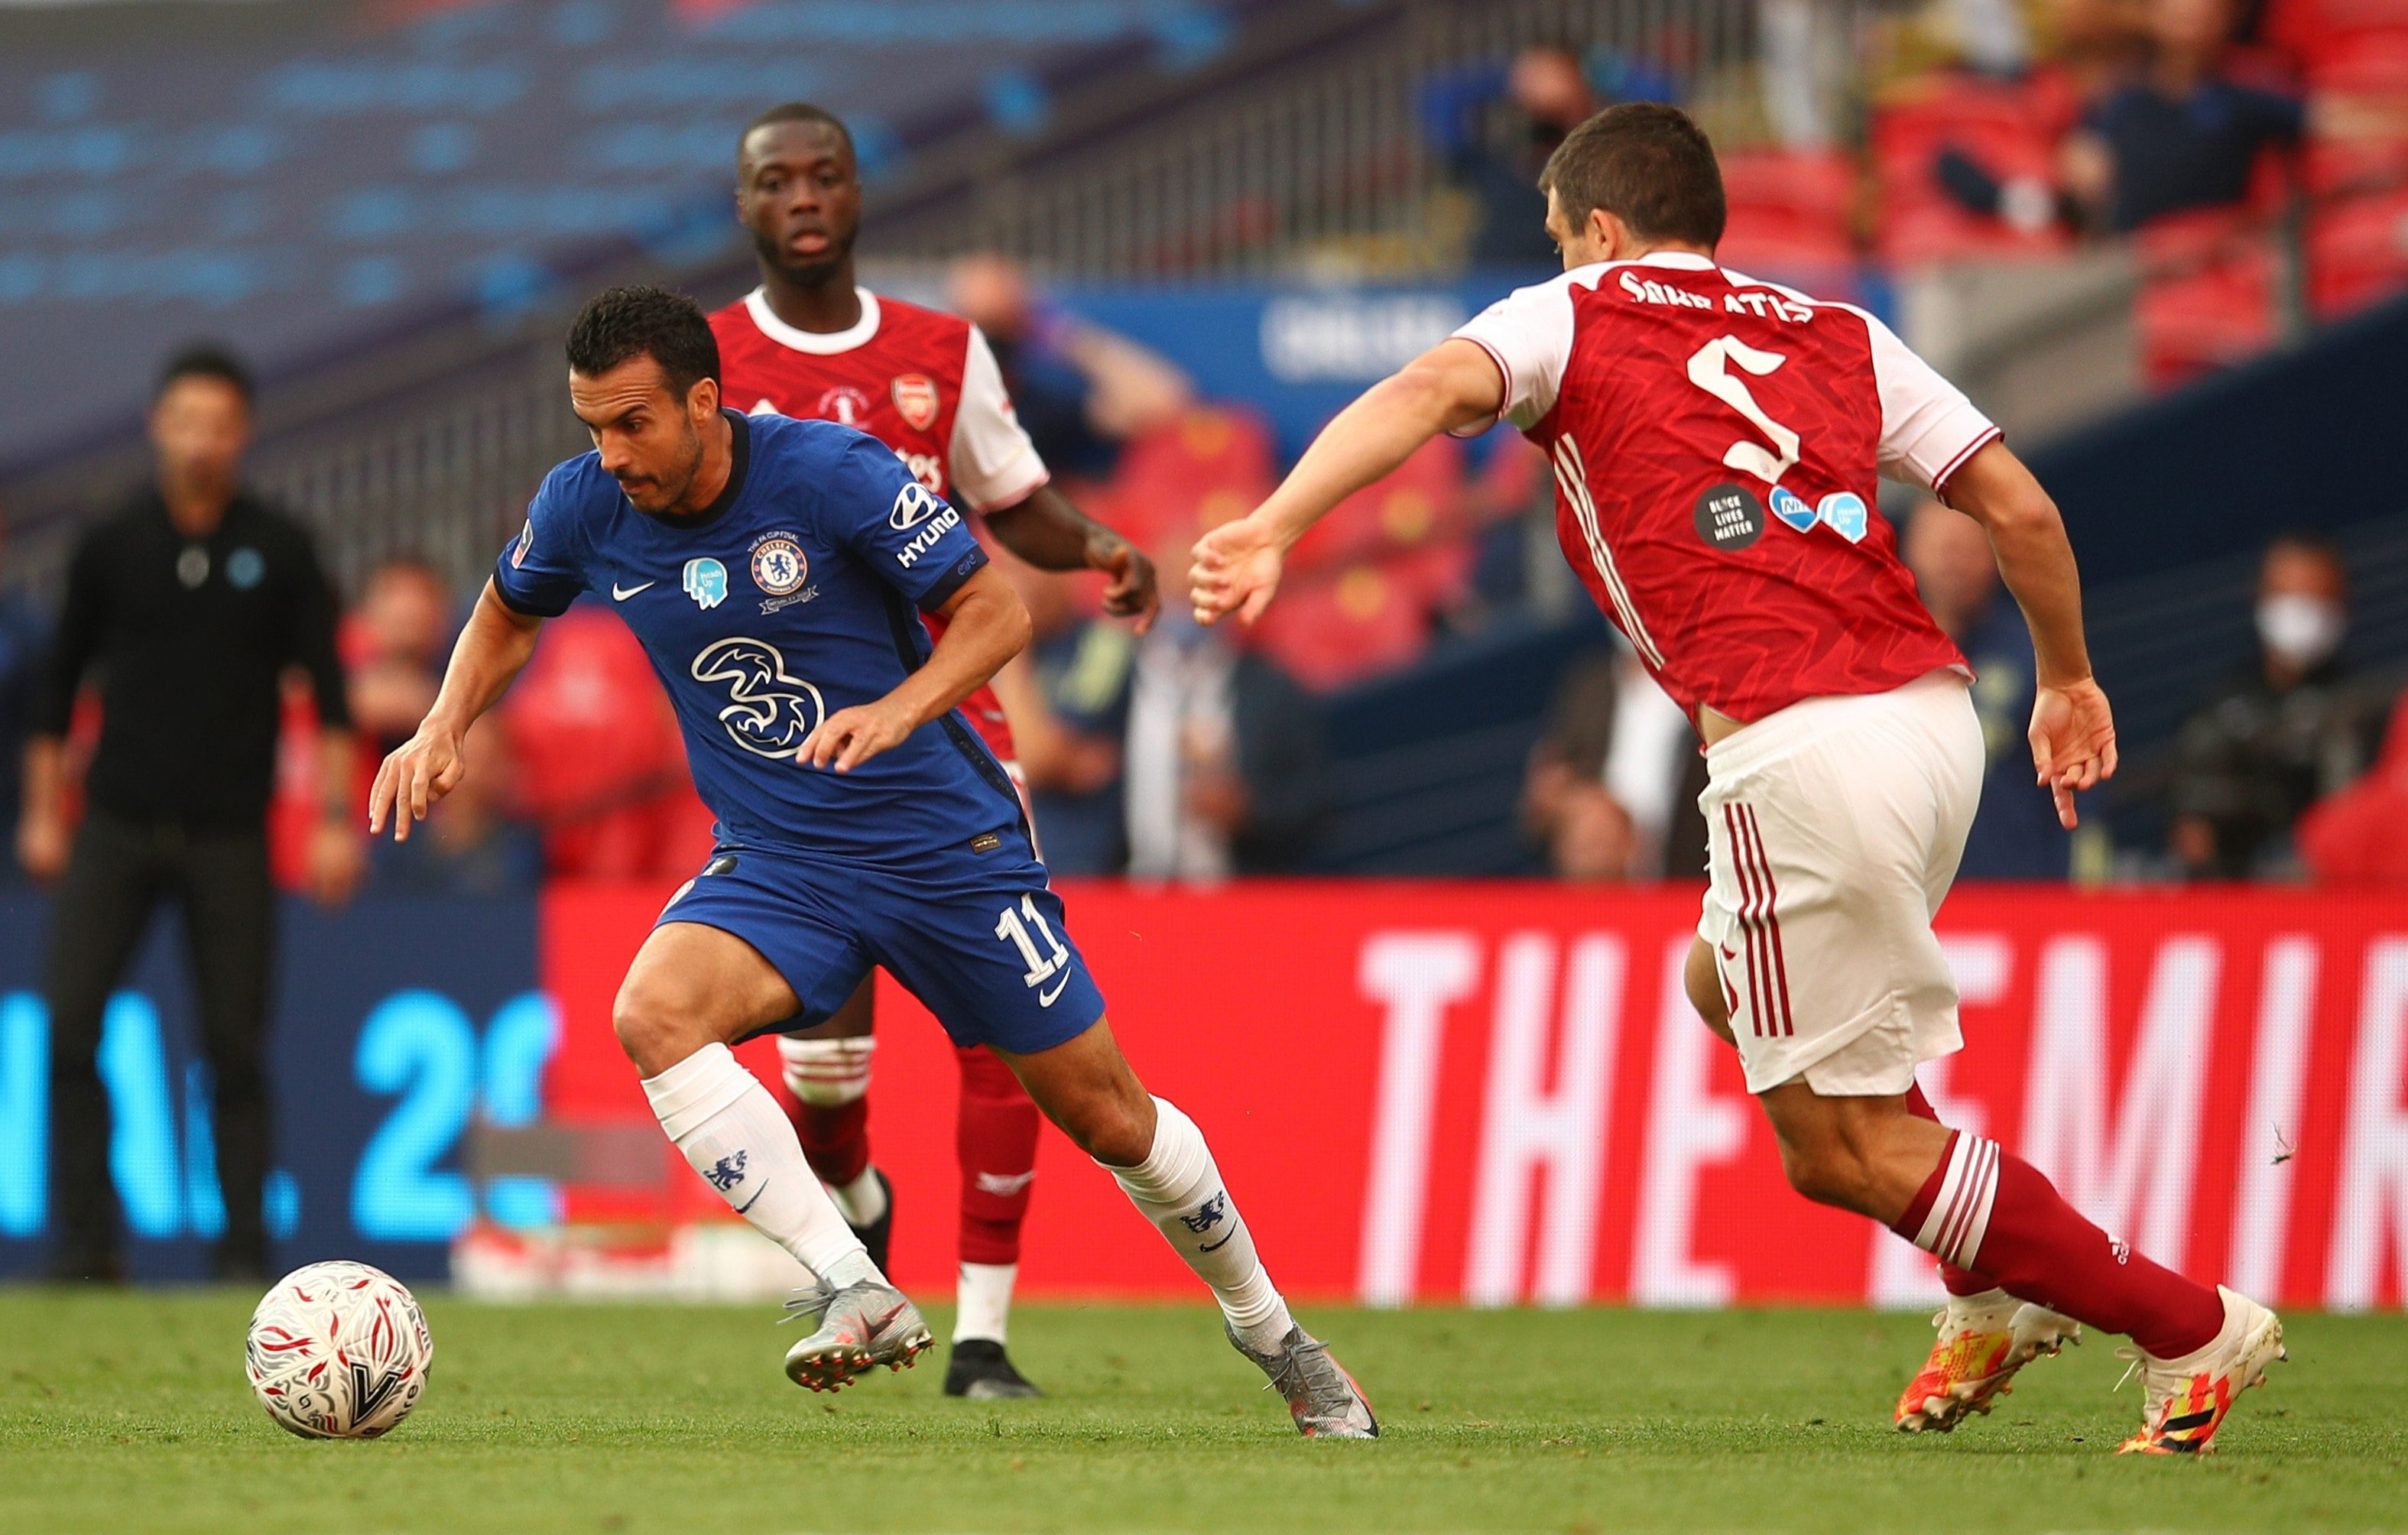 Pedro was brought on in the second half to replace the injured Christian Pulisic